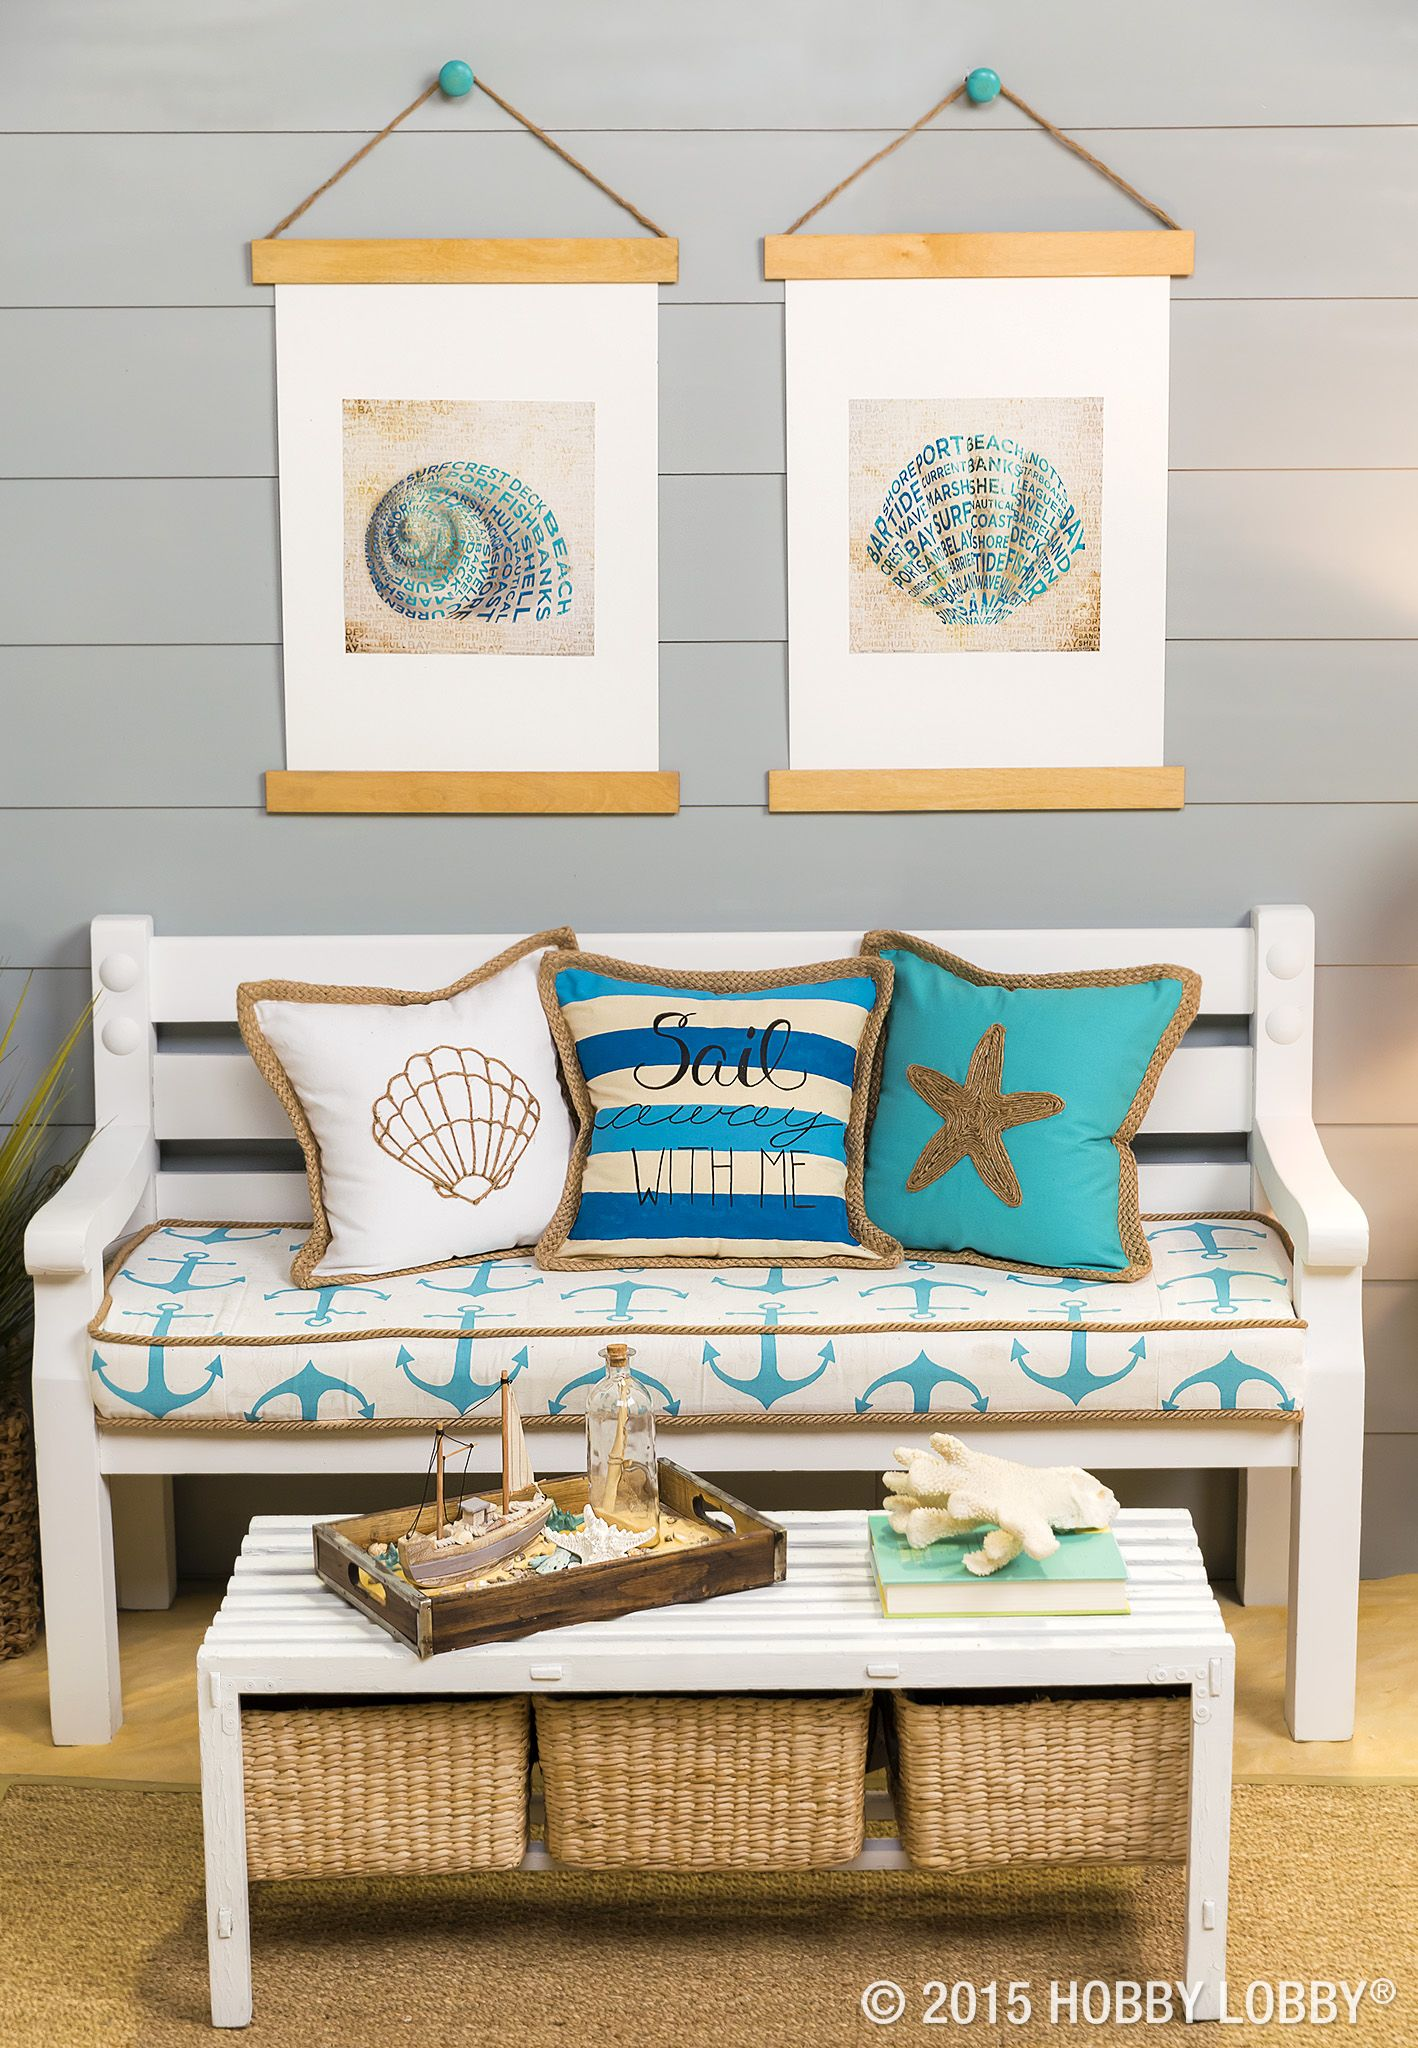 Who Would Have Thought That Jute Could Transform Plain Pillows